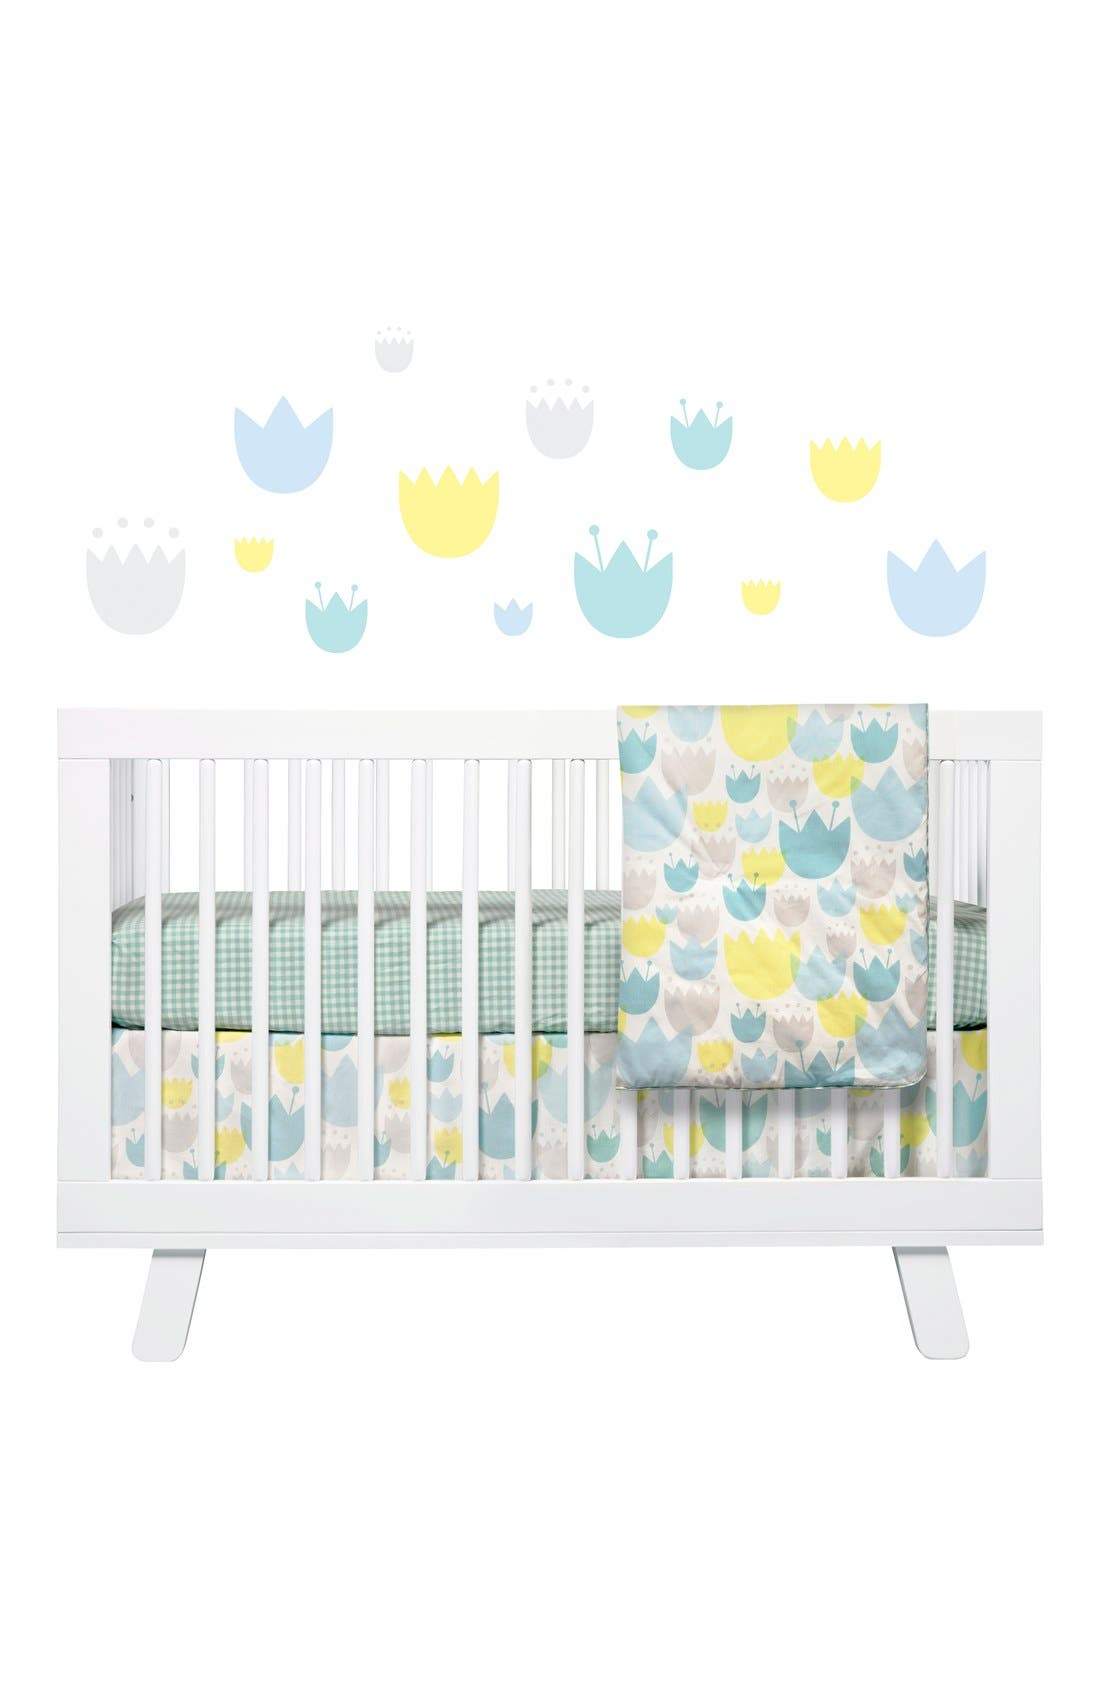 'Garden' Crib Sheet, Crib Skirt, Play Blanket, Changing Pad Cover, Stroller Blanket & Wall Decals,                             Main thumbnail 1, color,                             BLUE